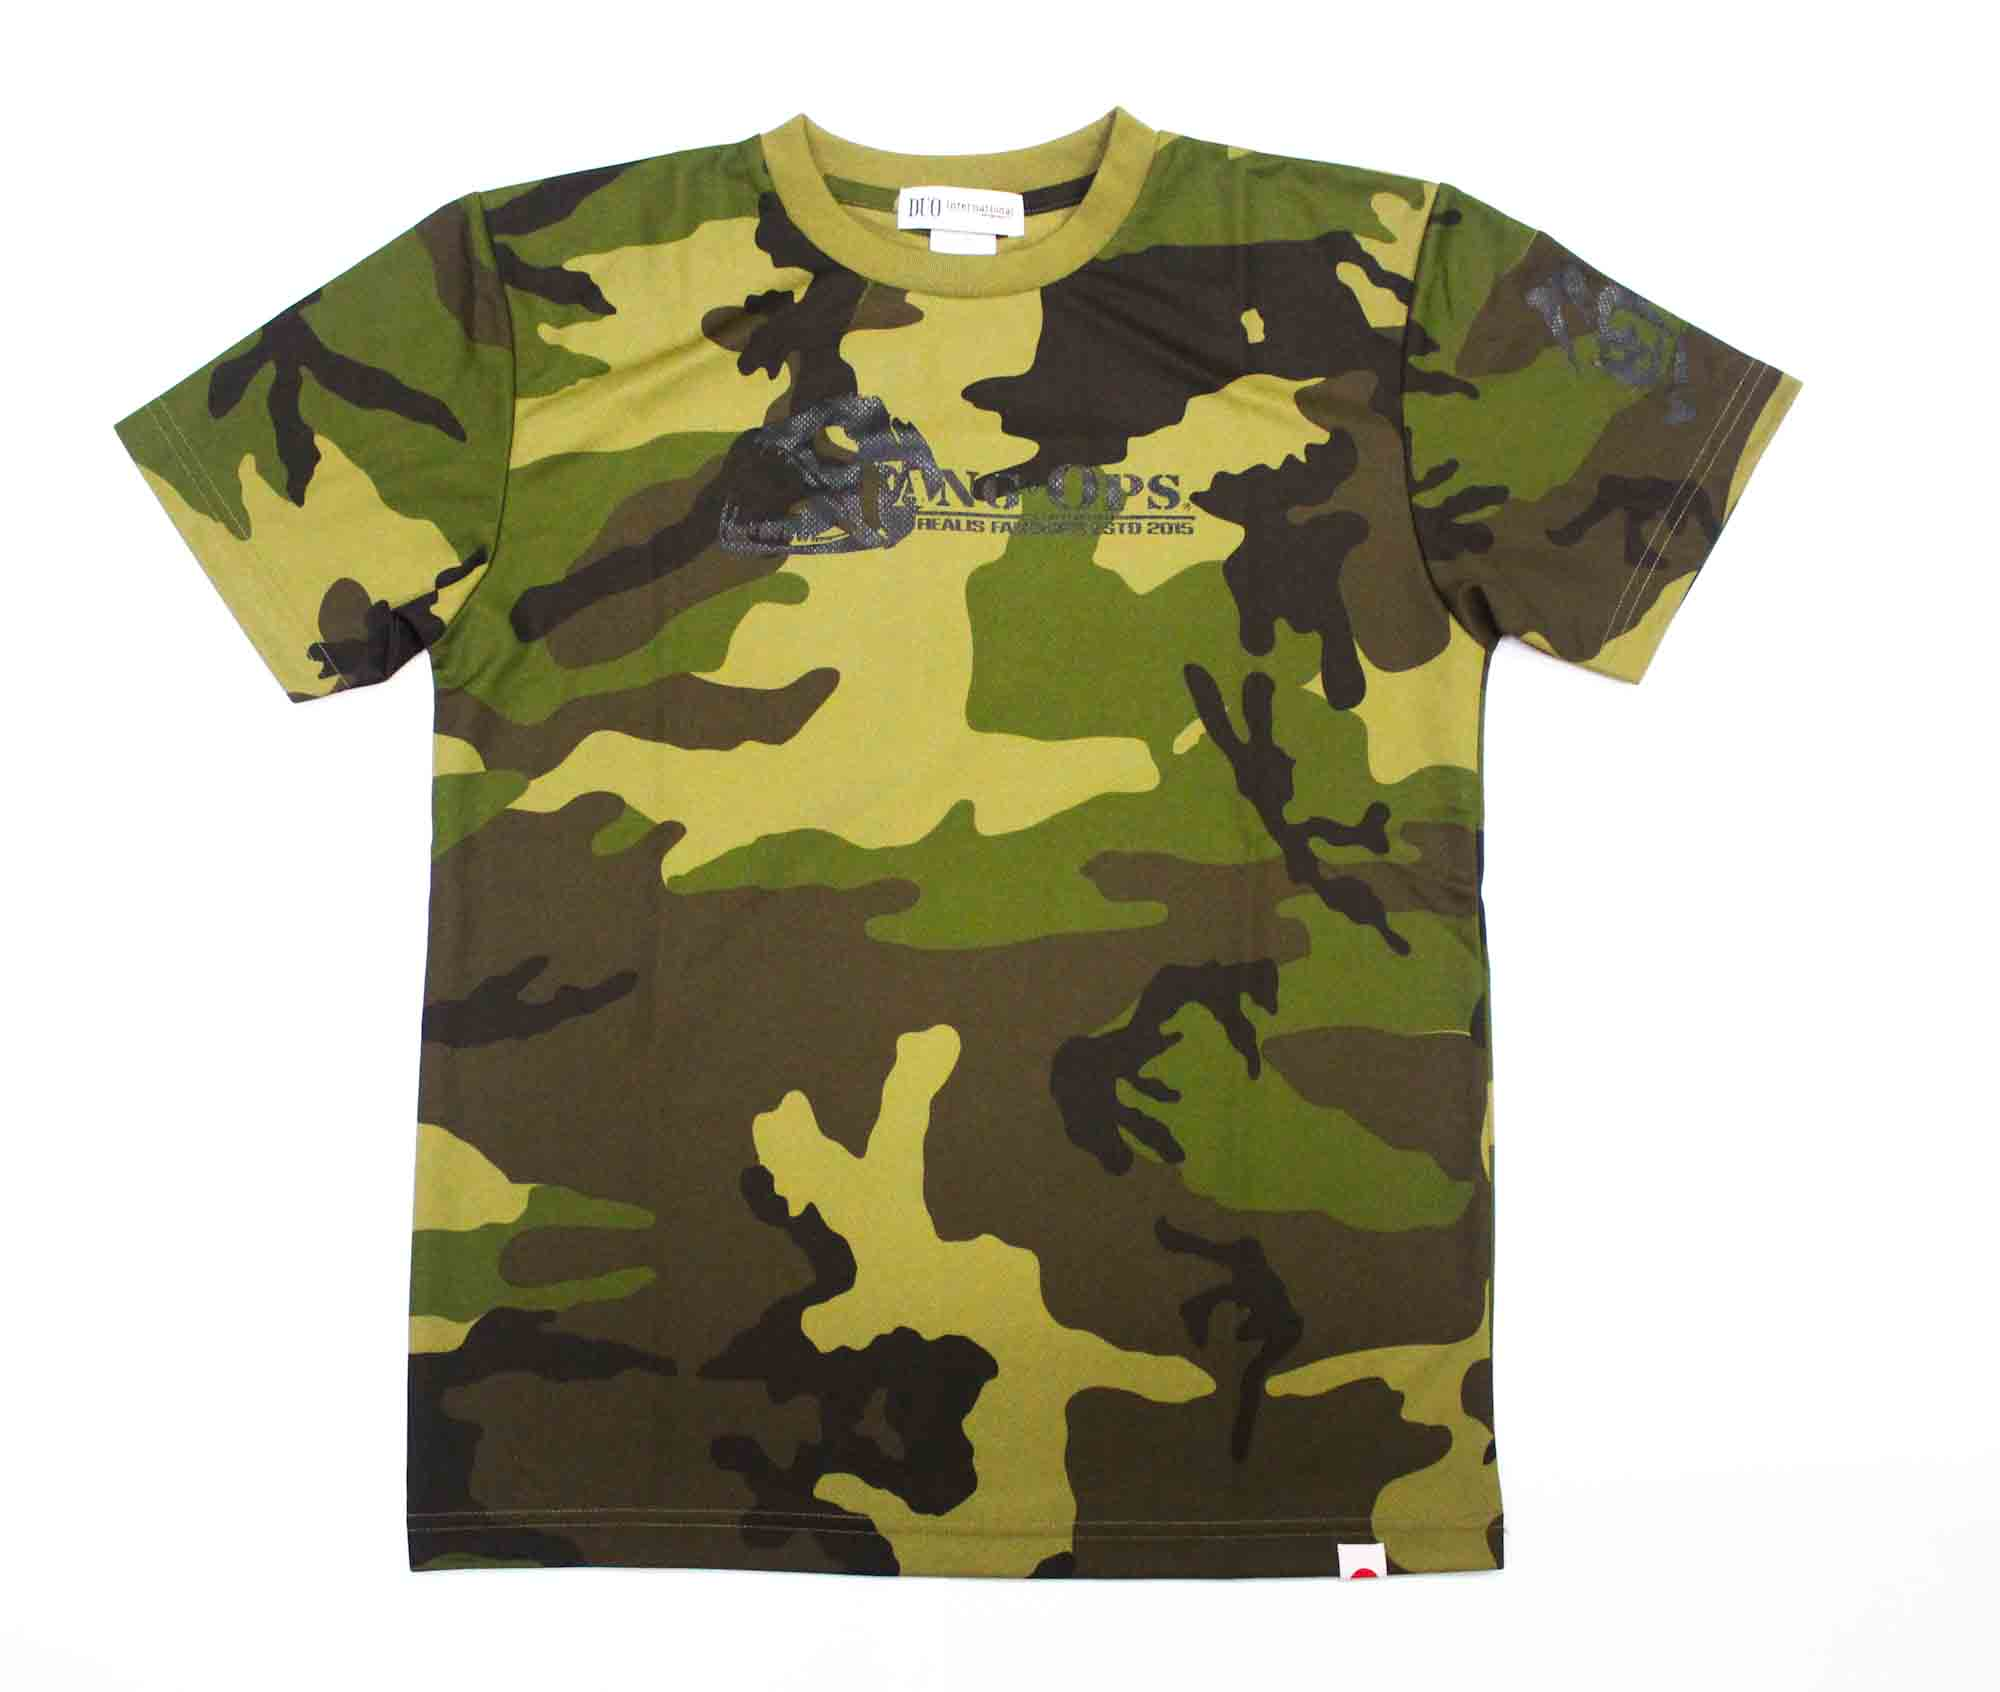 Duo T Shirt Fang Ops Beast Short Sleeve Dry Fit Army Green Size M (1461)